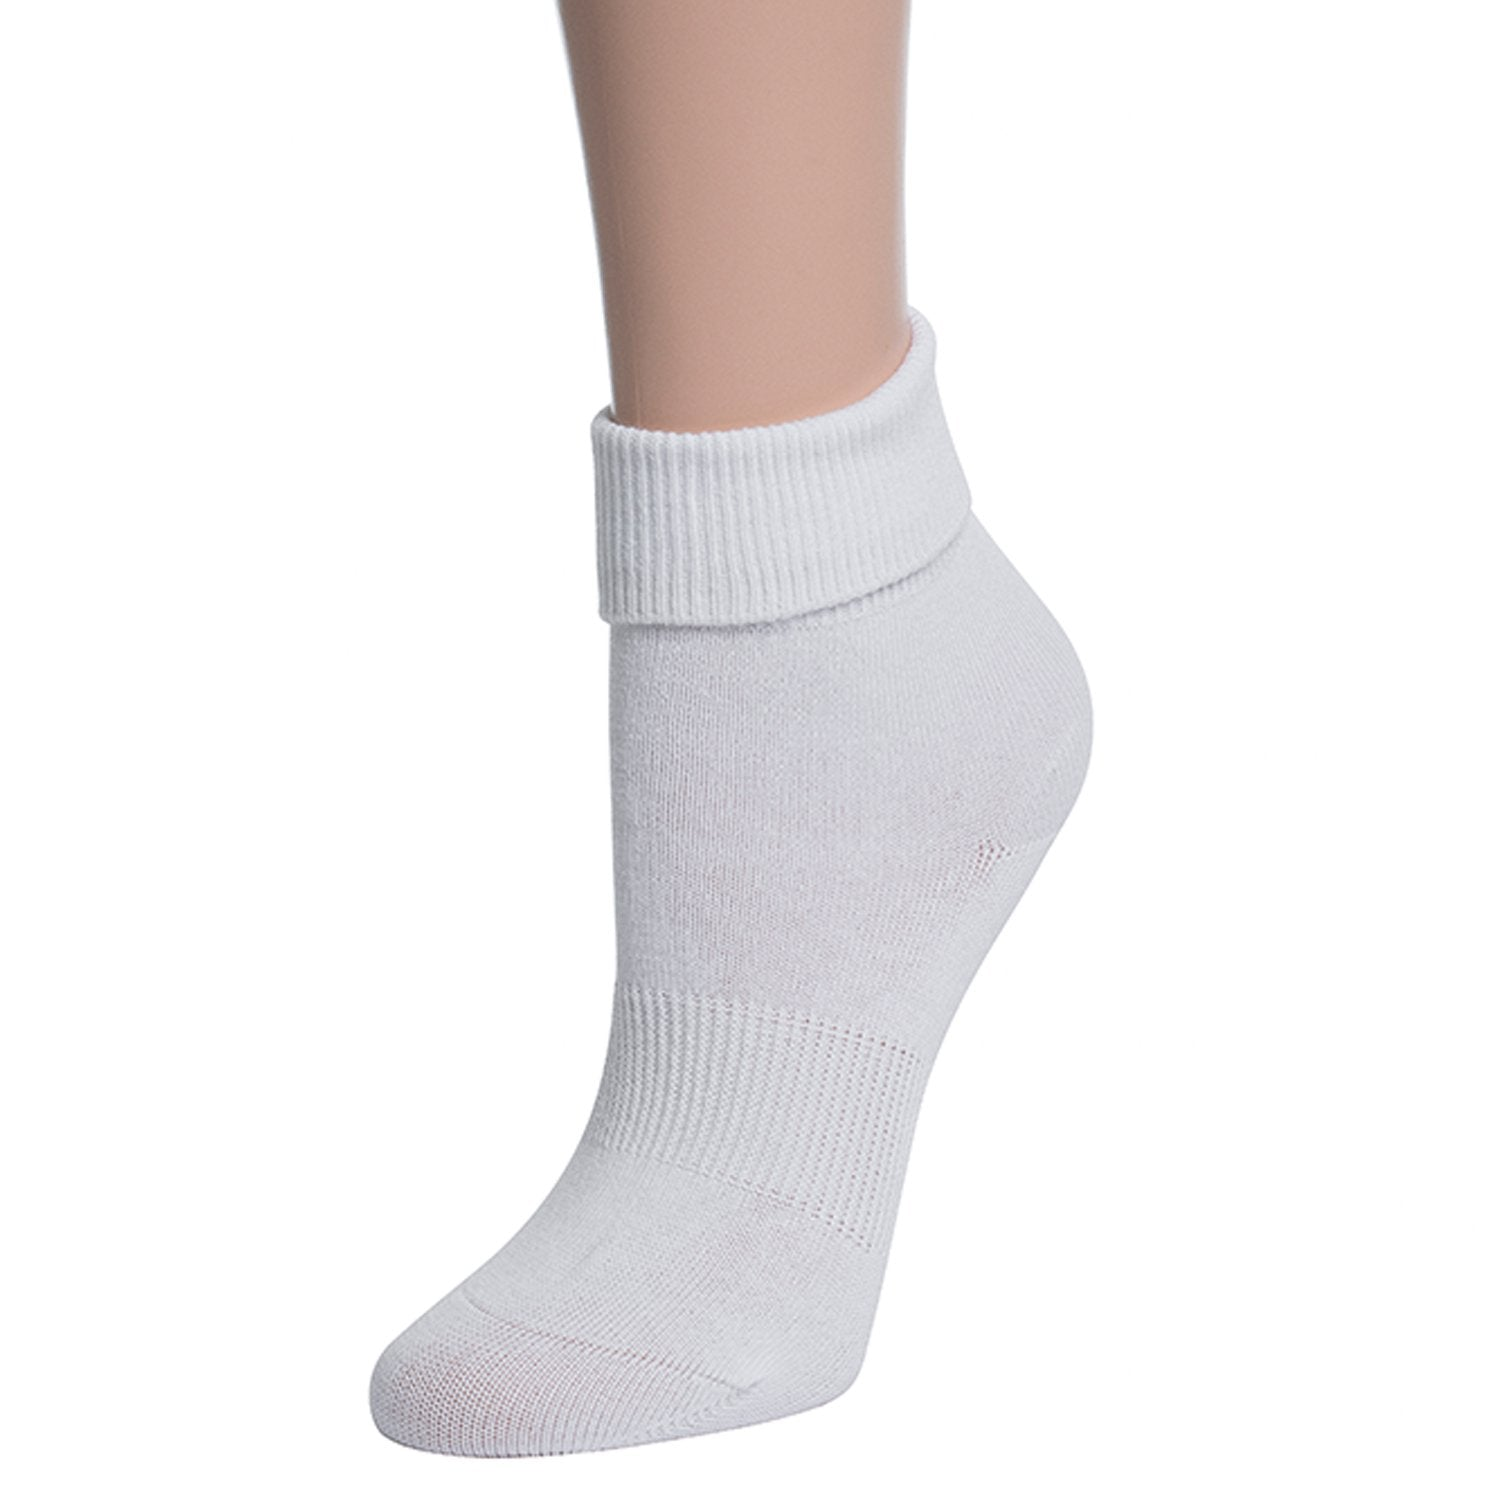 Cotton School Socks – 3 Pack